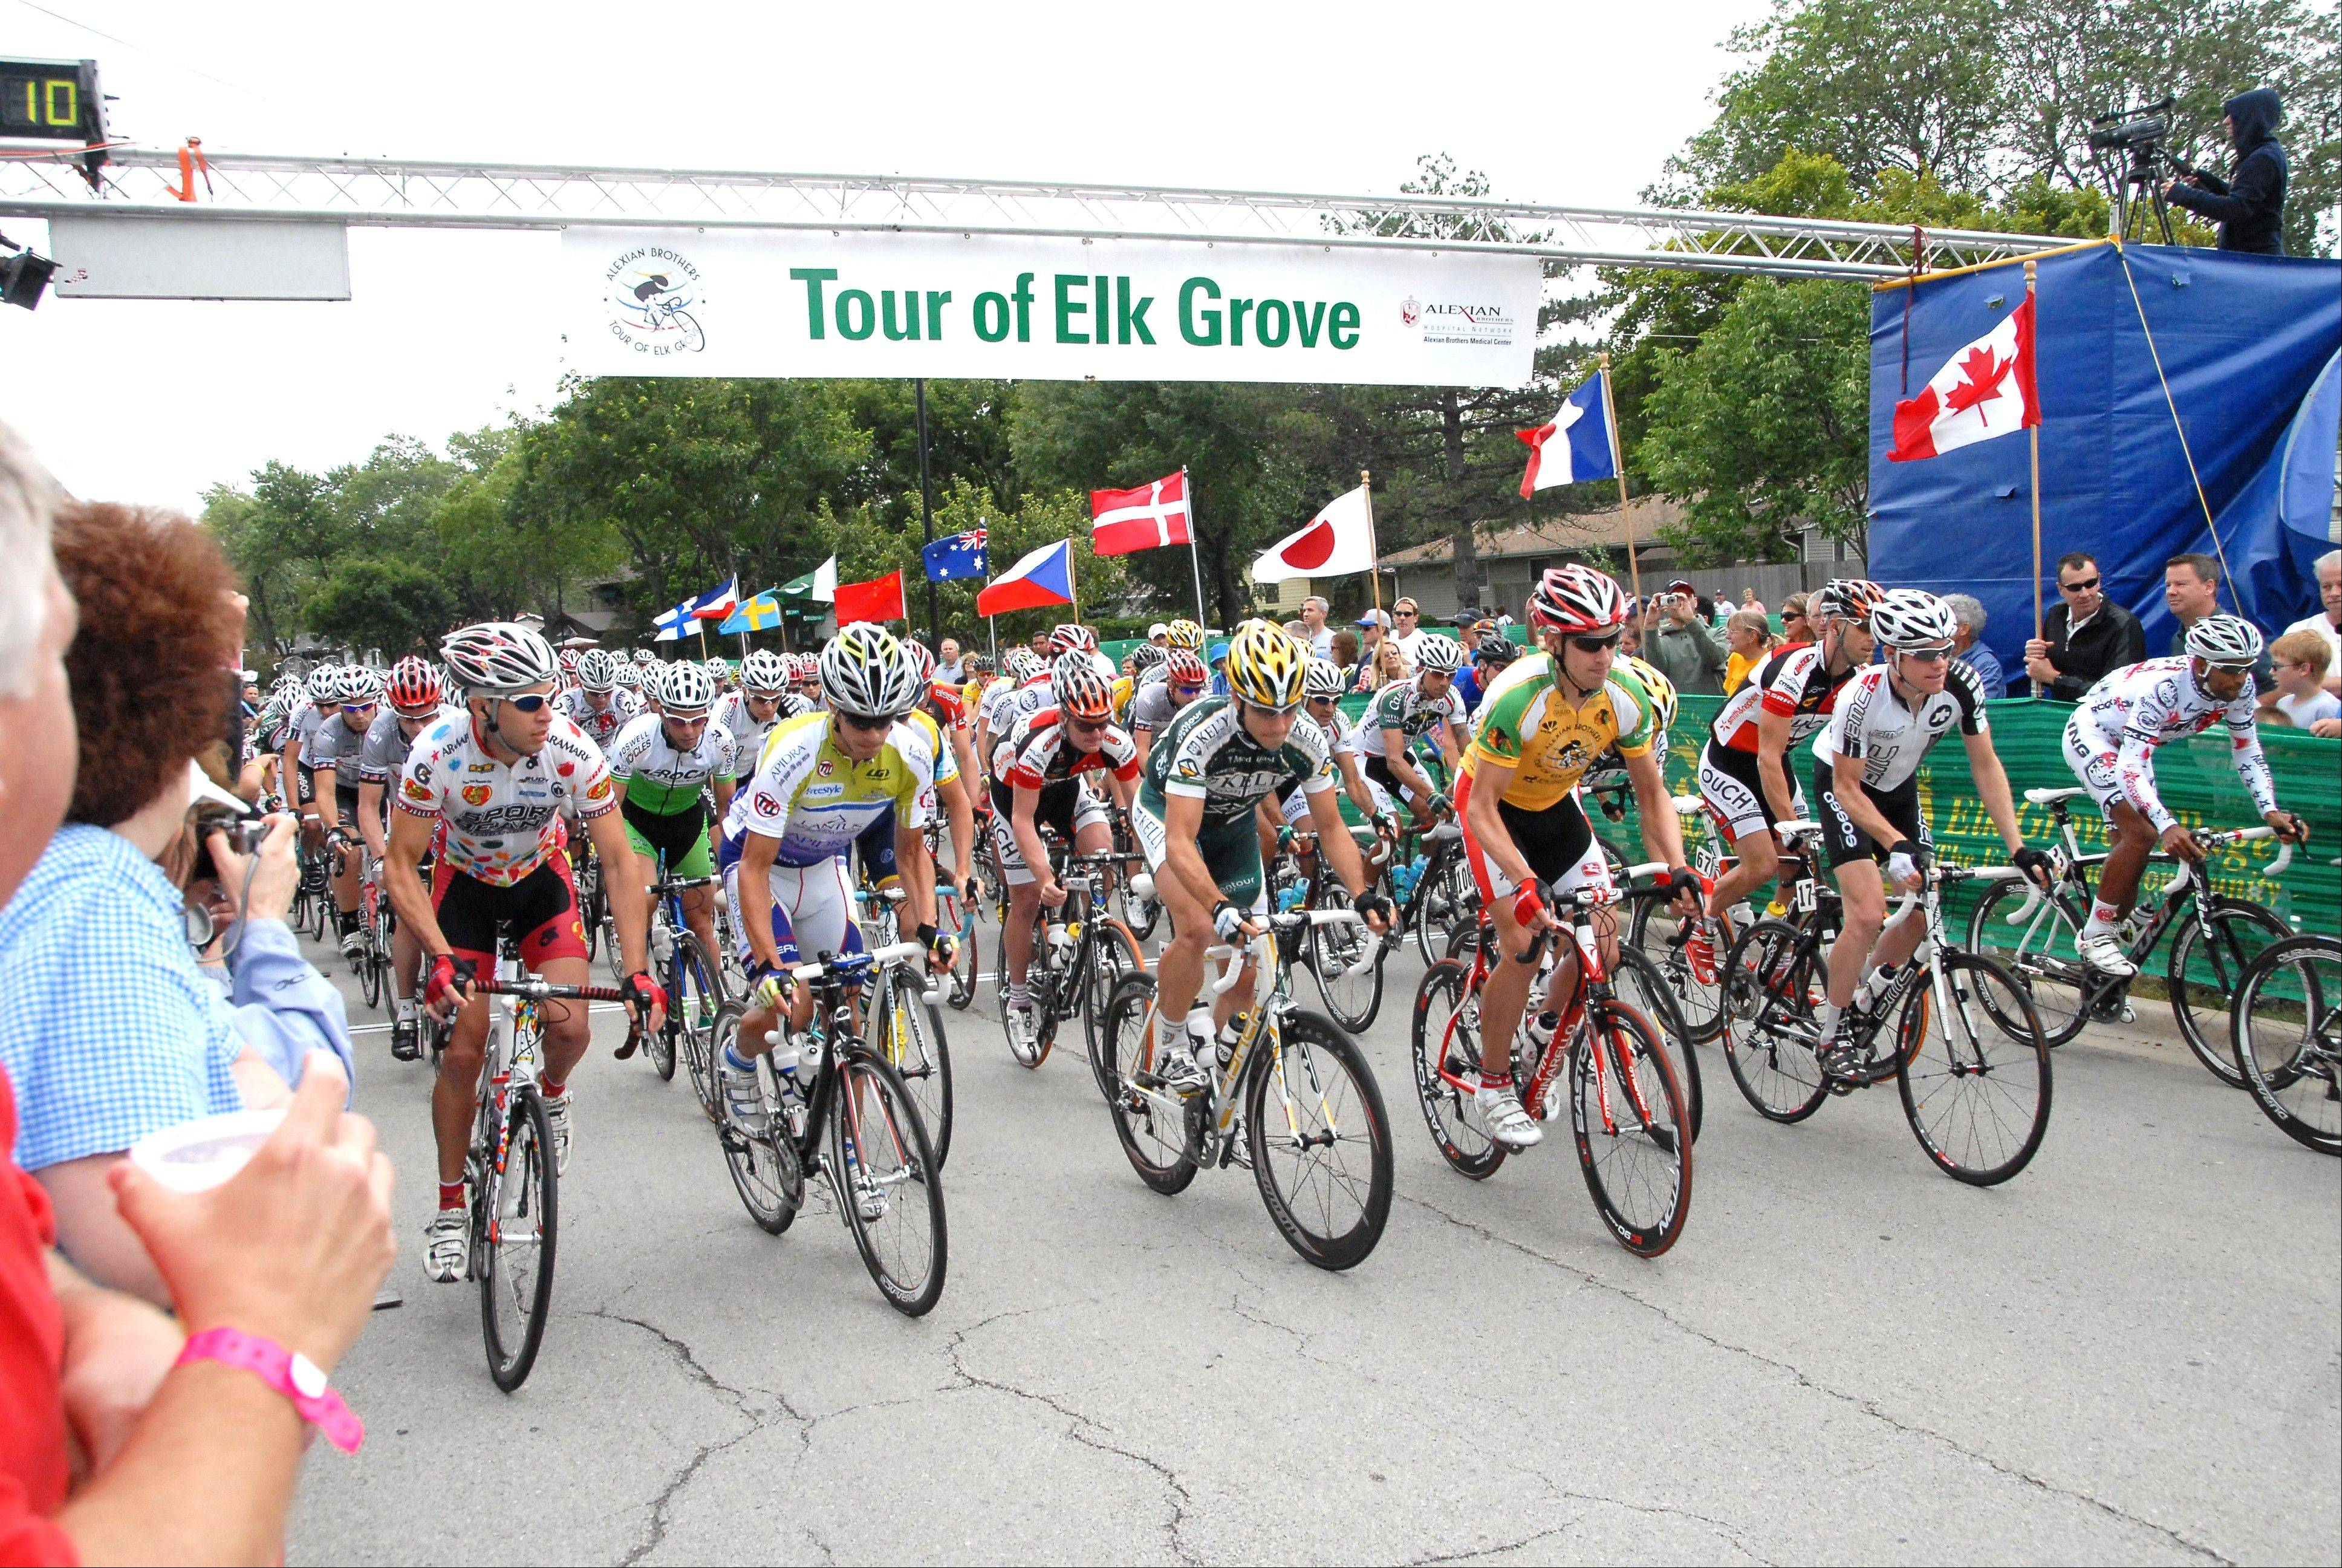 The fallout from disgraced cycling legend Lance Armstrong�s doping scandal may include more drug testing at top-tier races, including the Northwest suburbs� own Tour of Elk Grove, according to the head of the United States sanctioning body for competitive cycling.